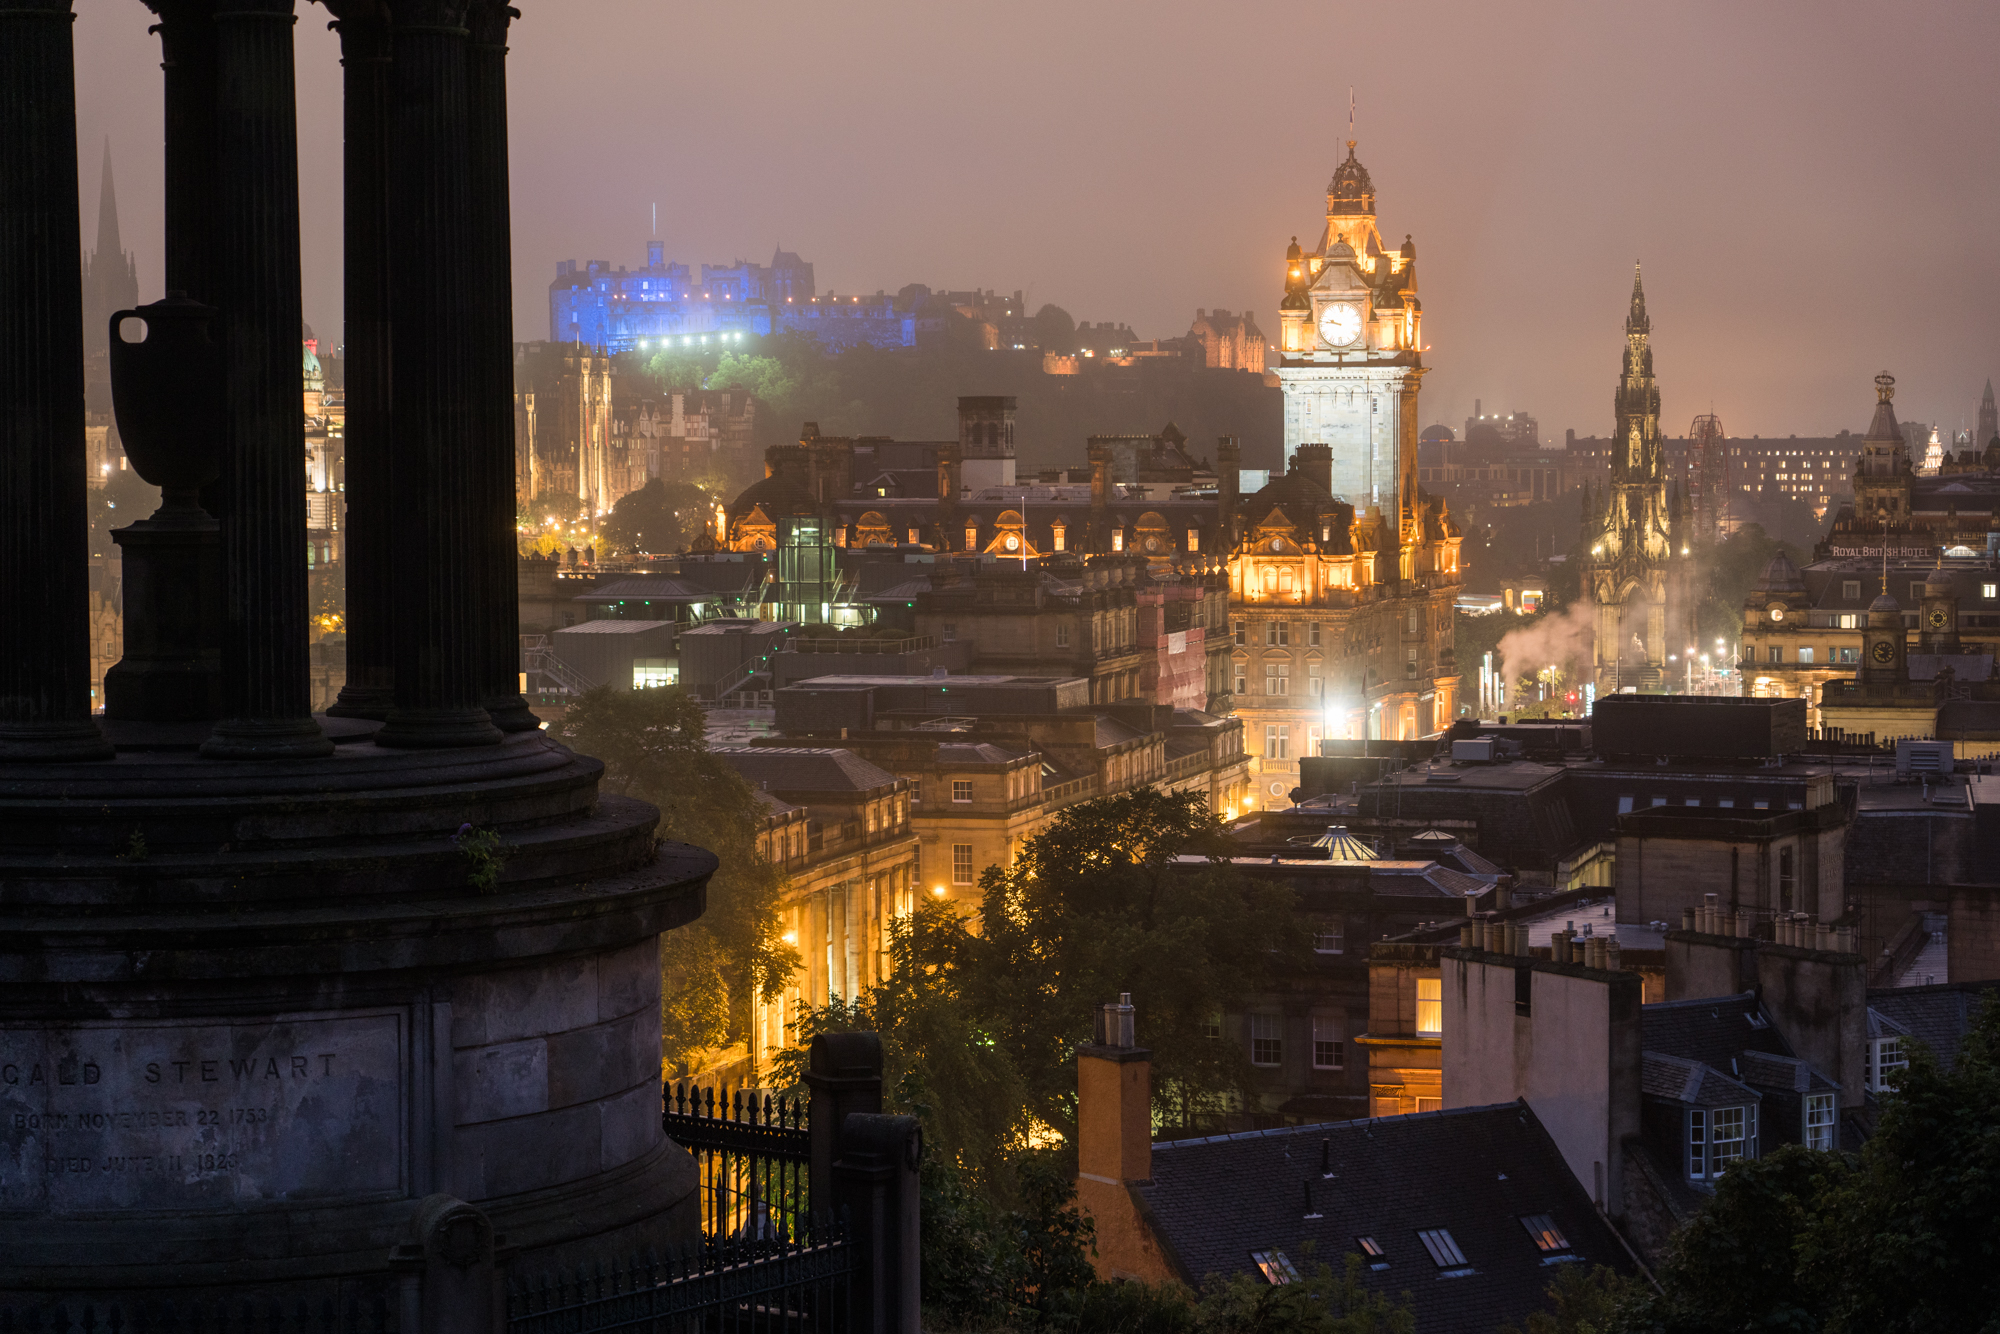 The Balmoral Hotel's tower and The Edinburgh Castle are illuminated at dusk as seen from Calton Hill.